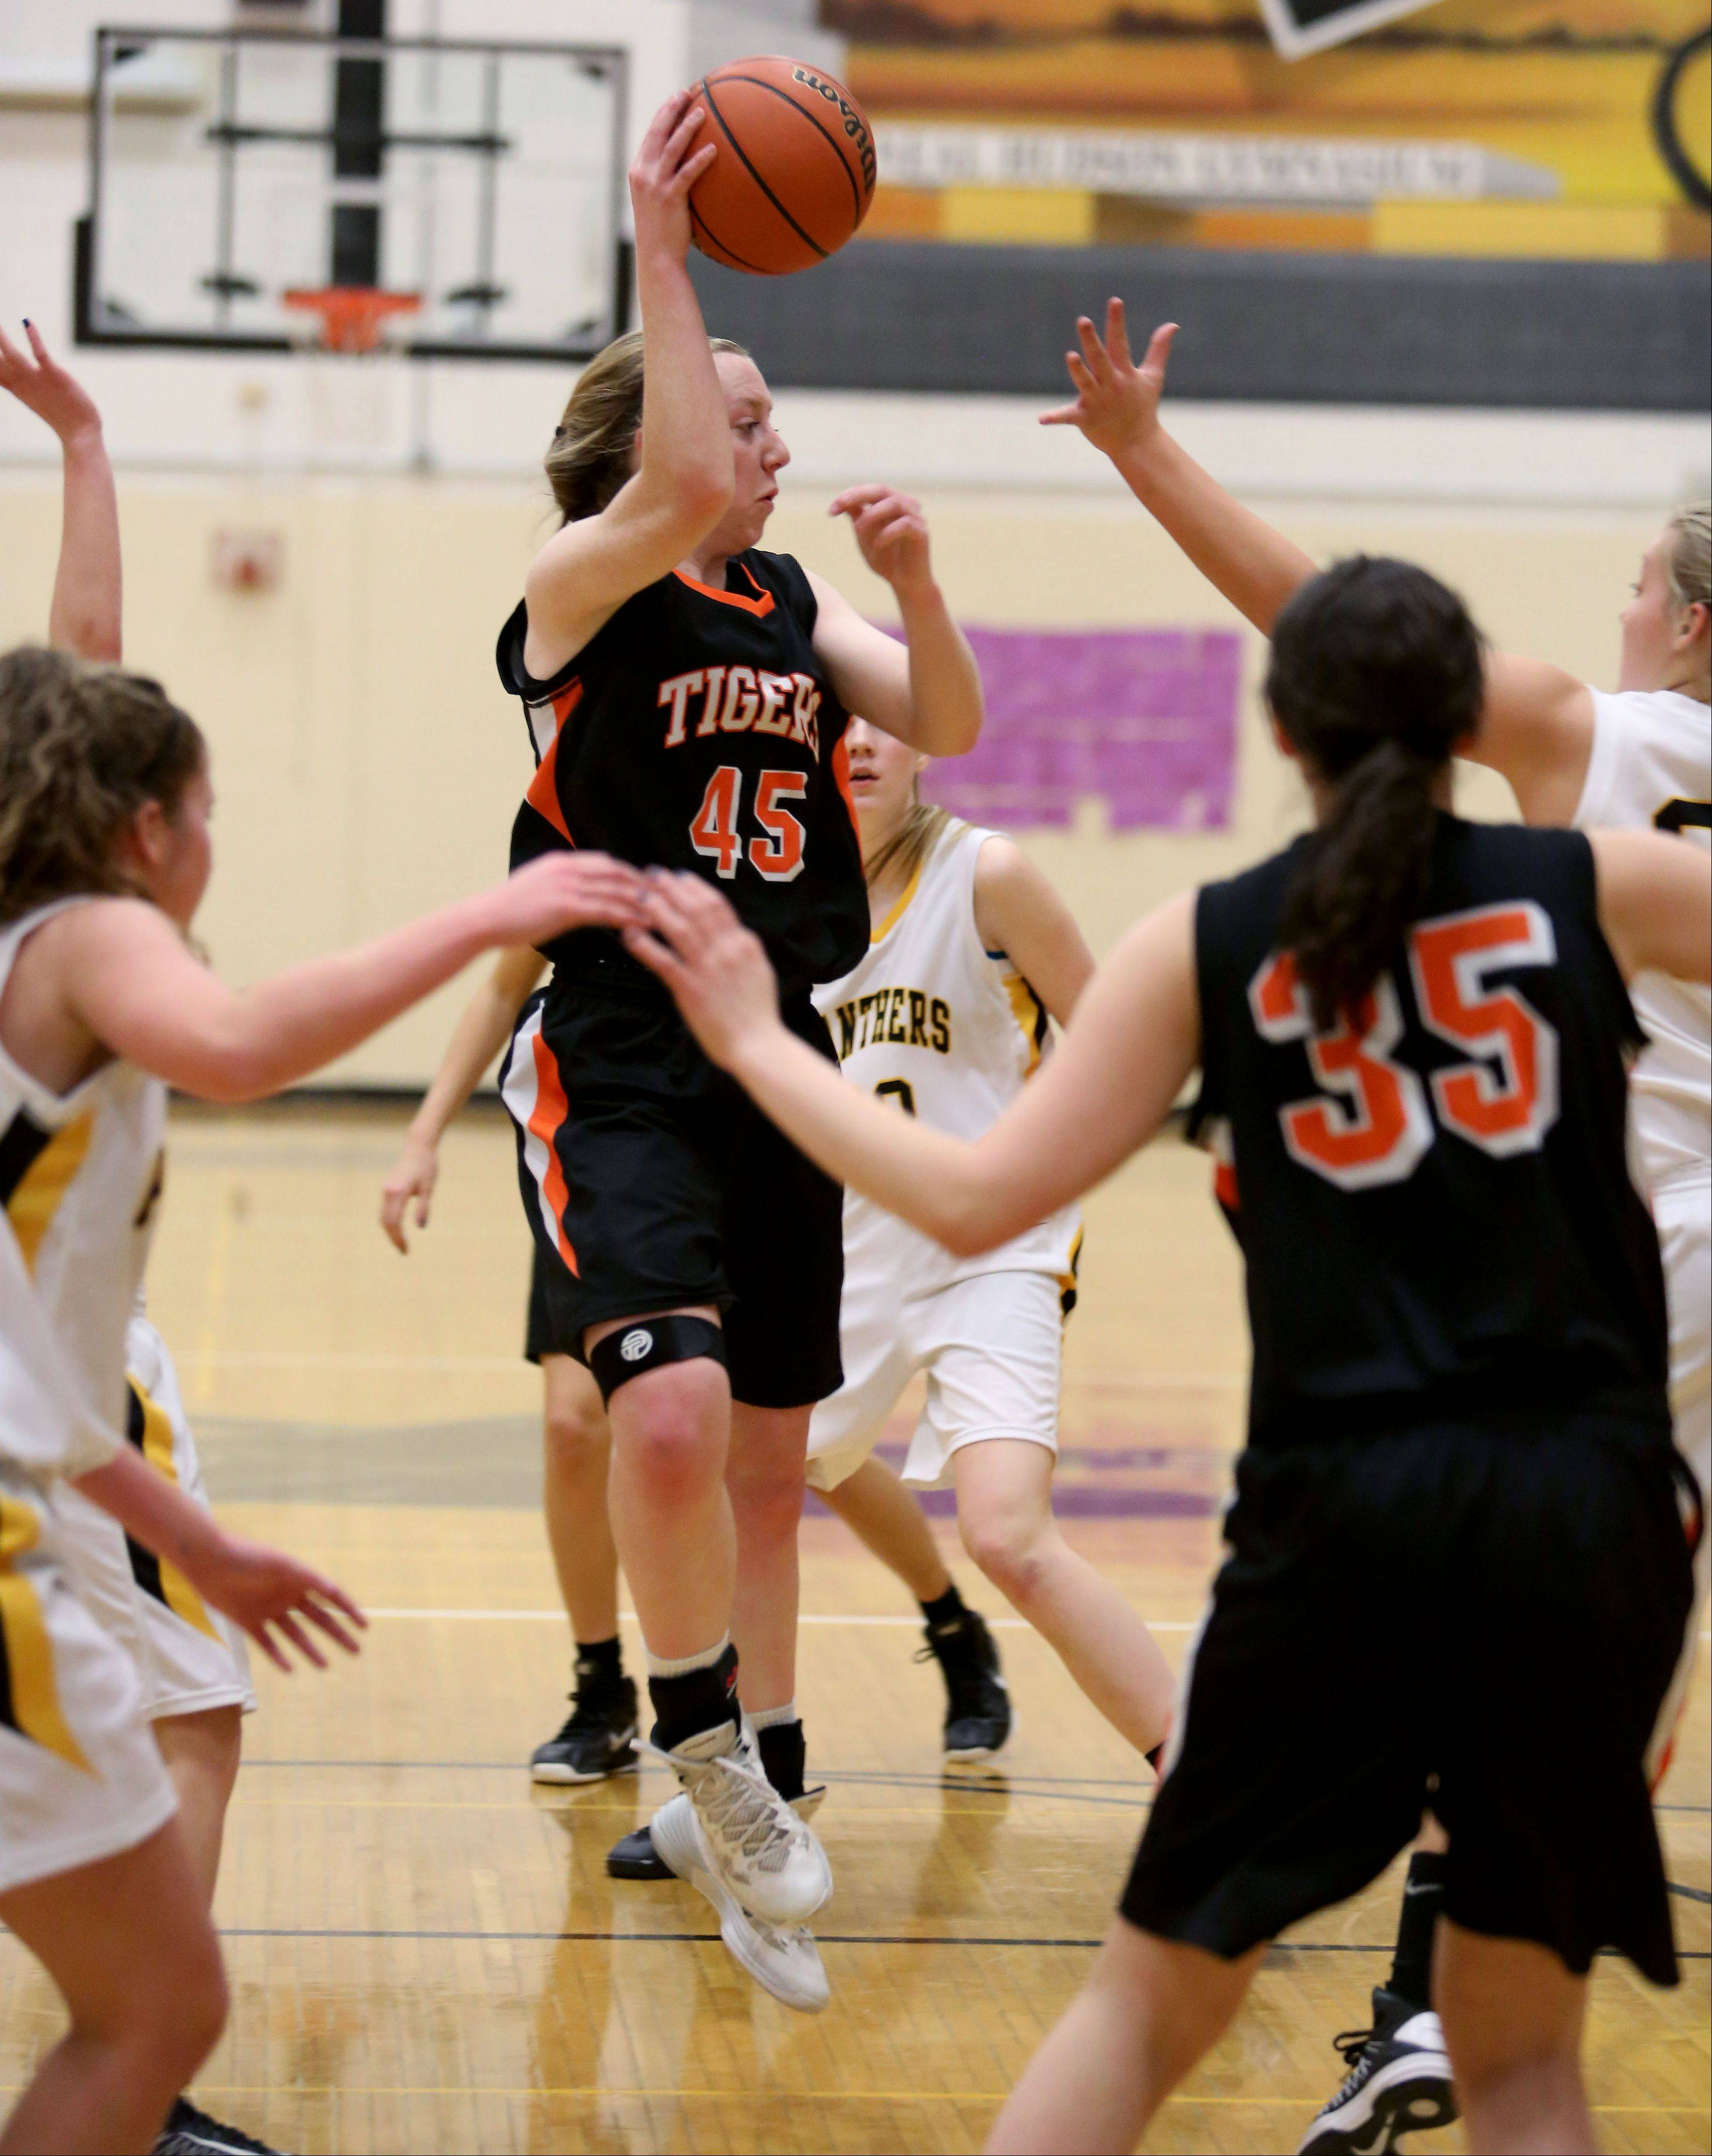 Wheaton Warrenville South's Meghan Waldron passes the ball.